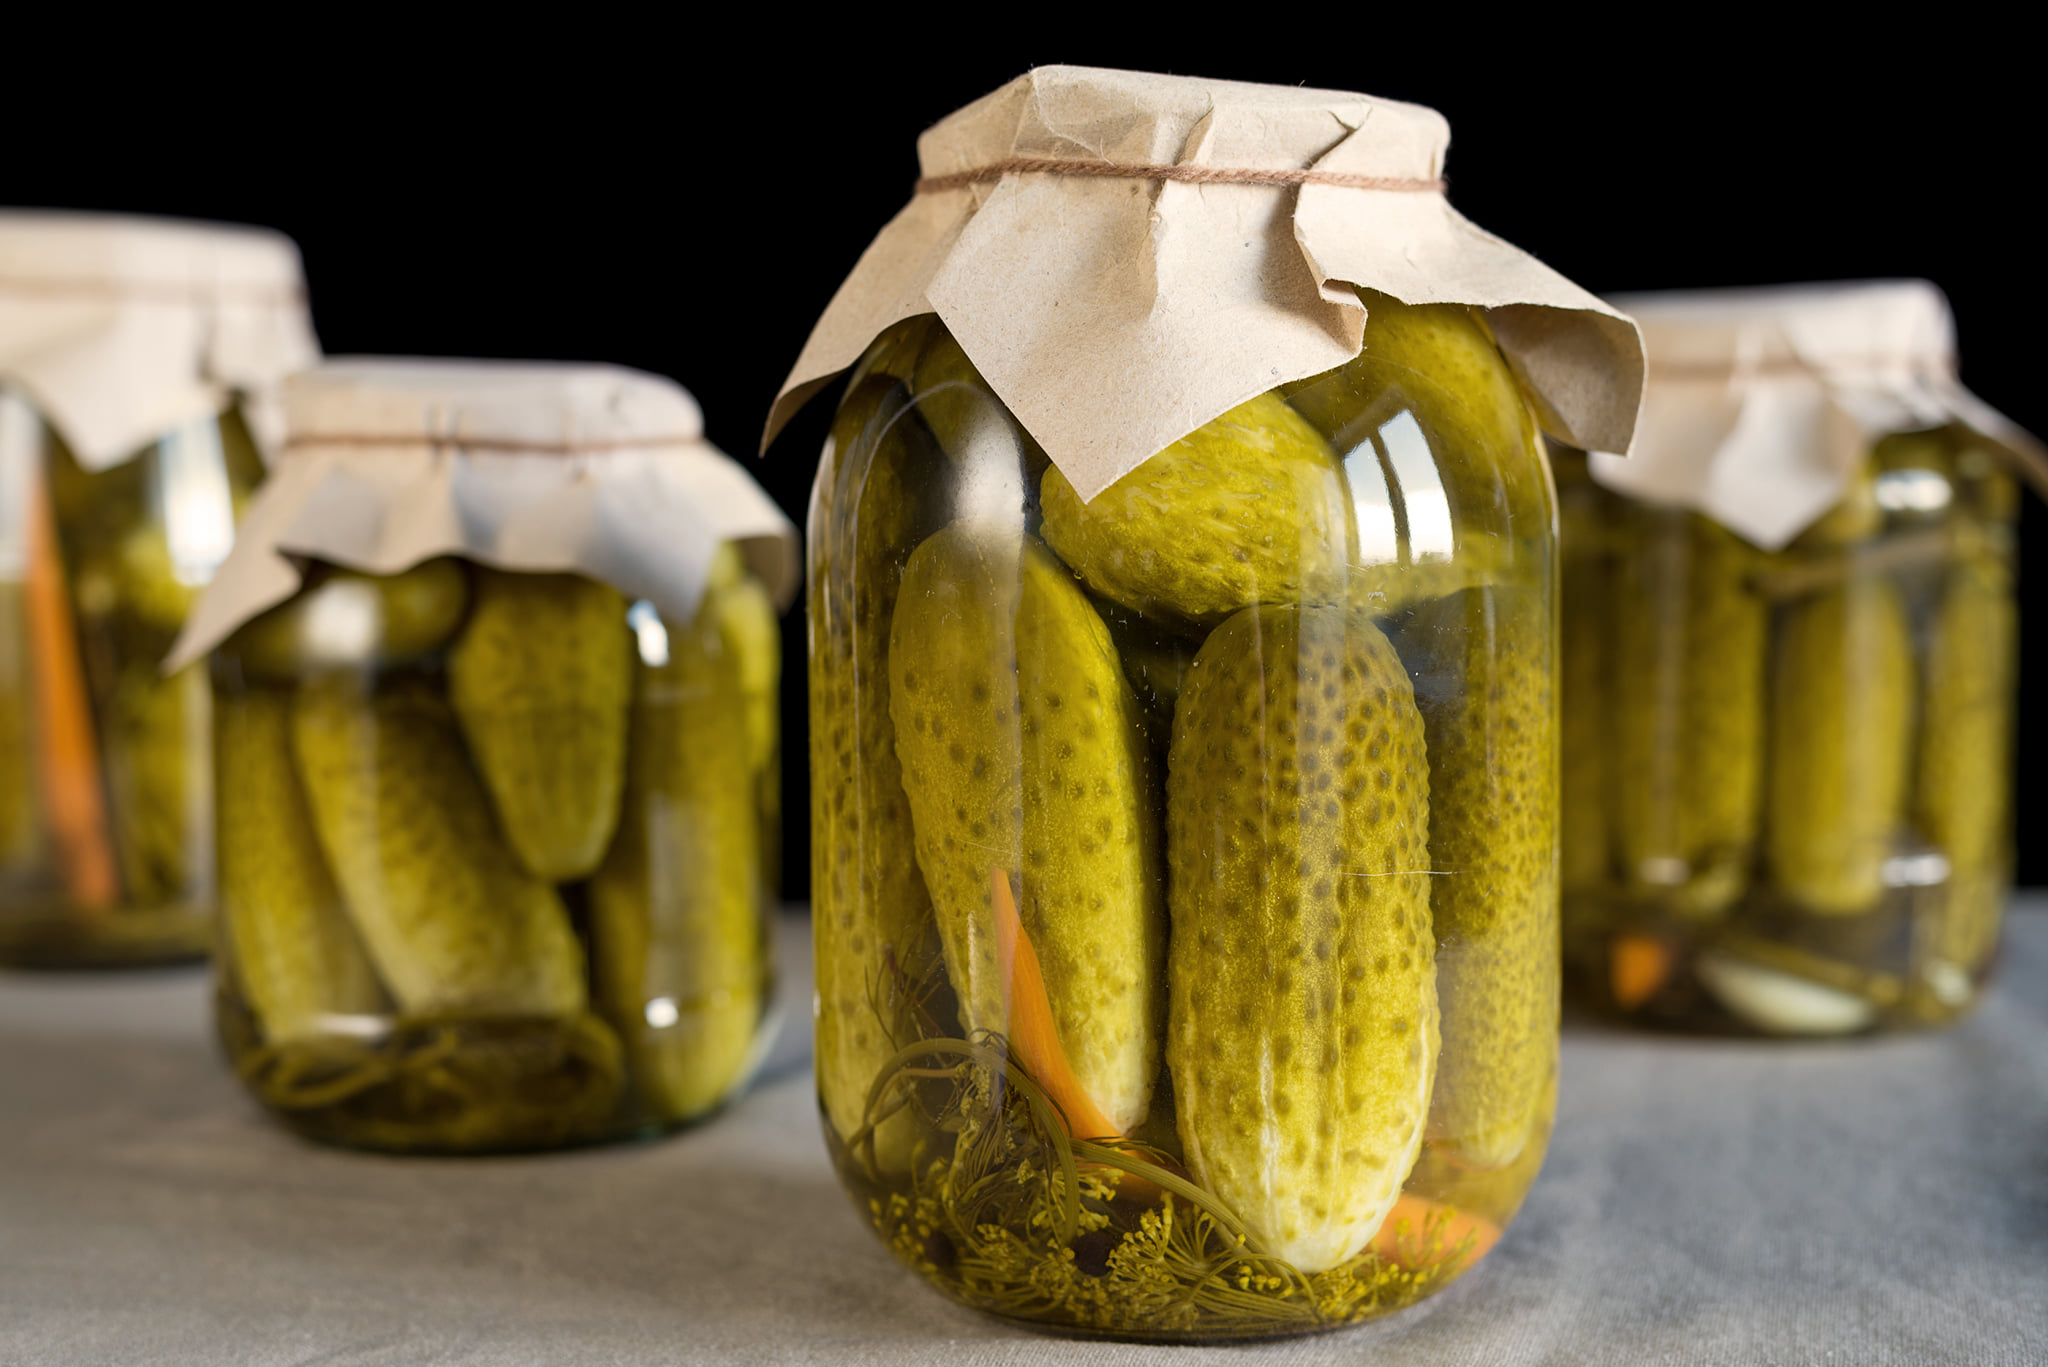 PicklesDelivered.com